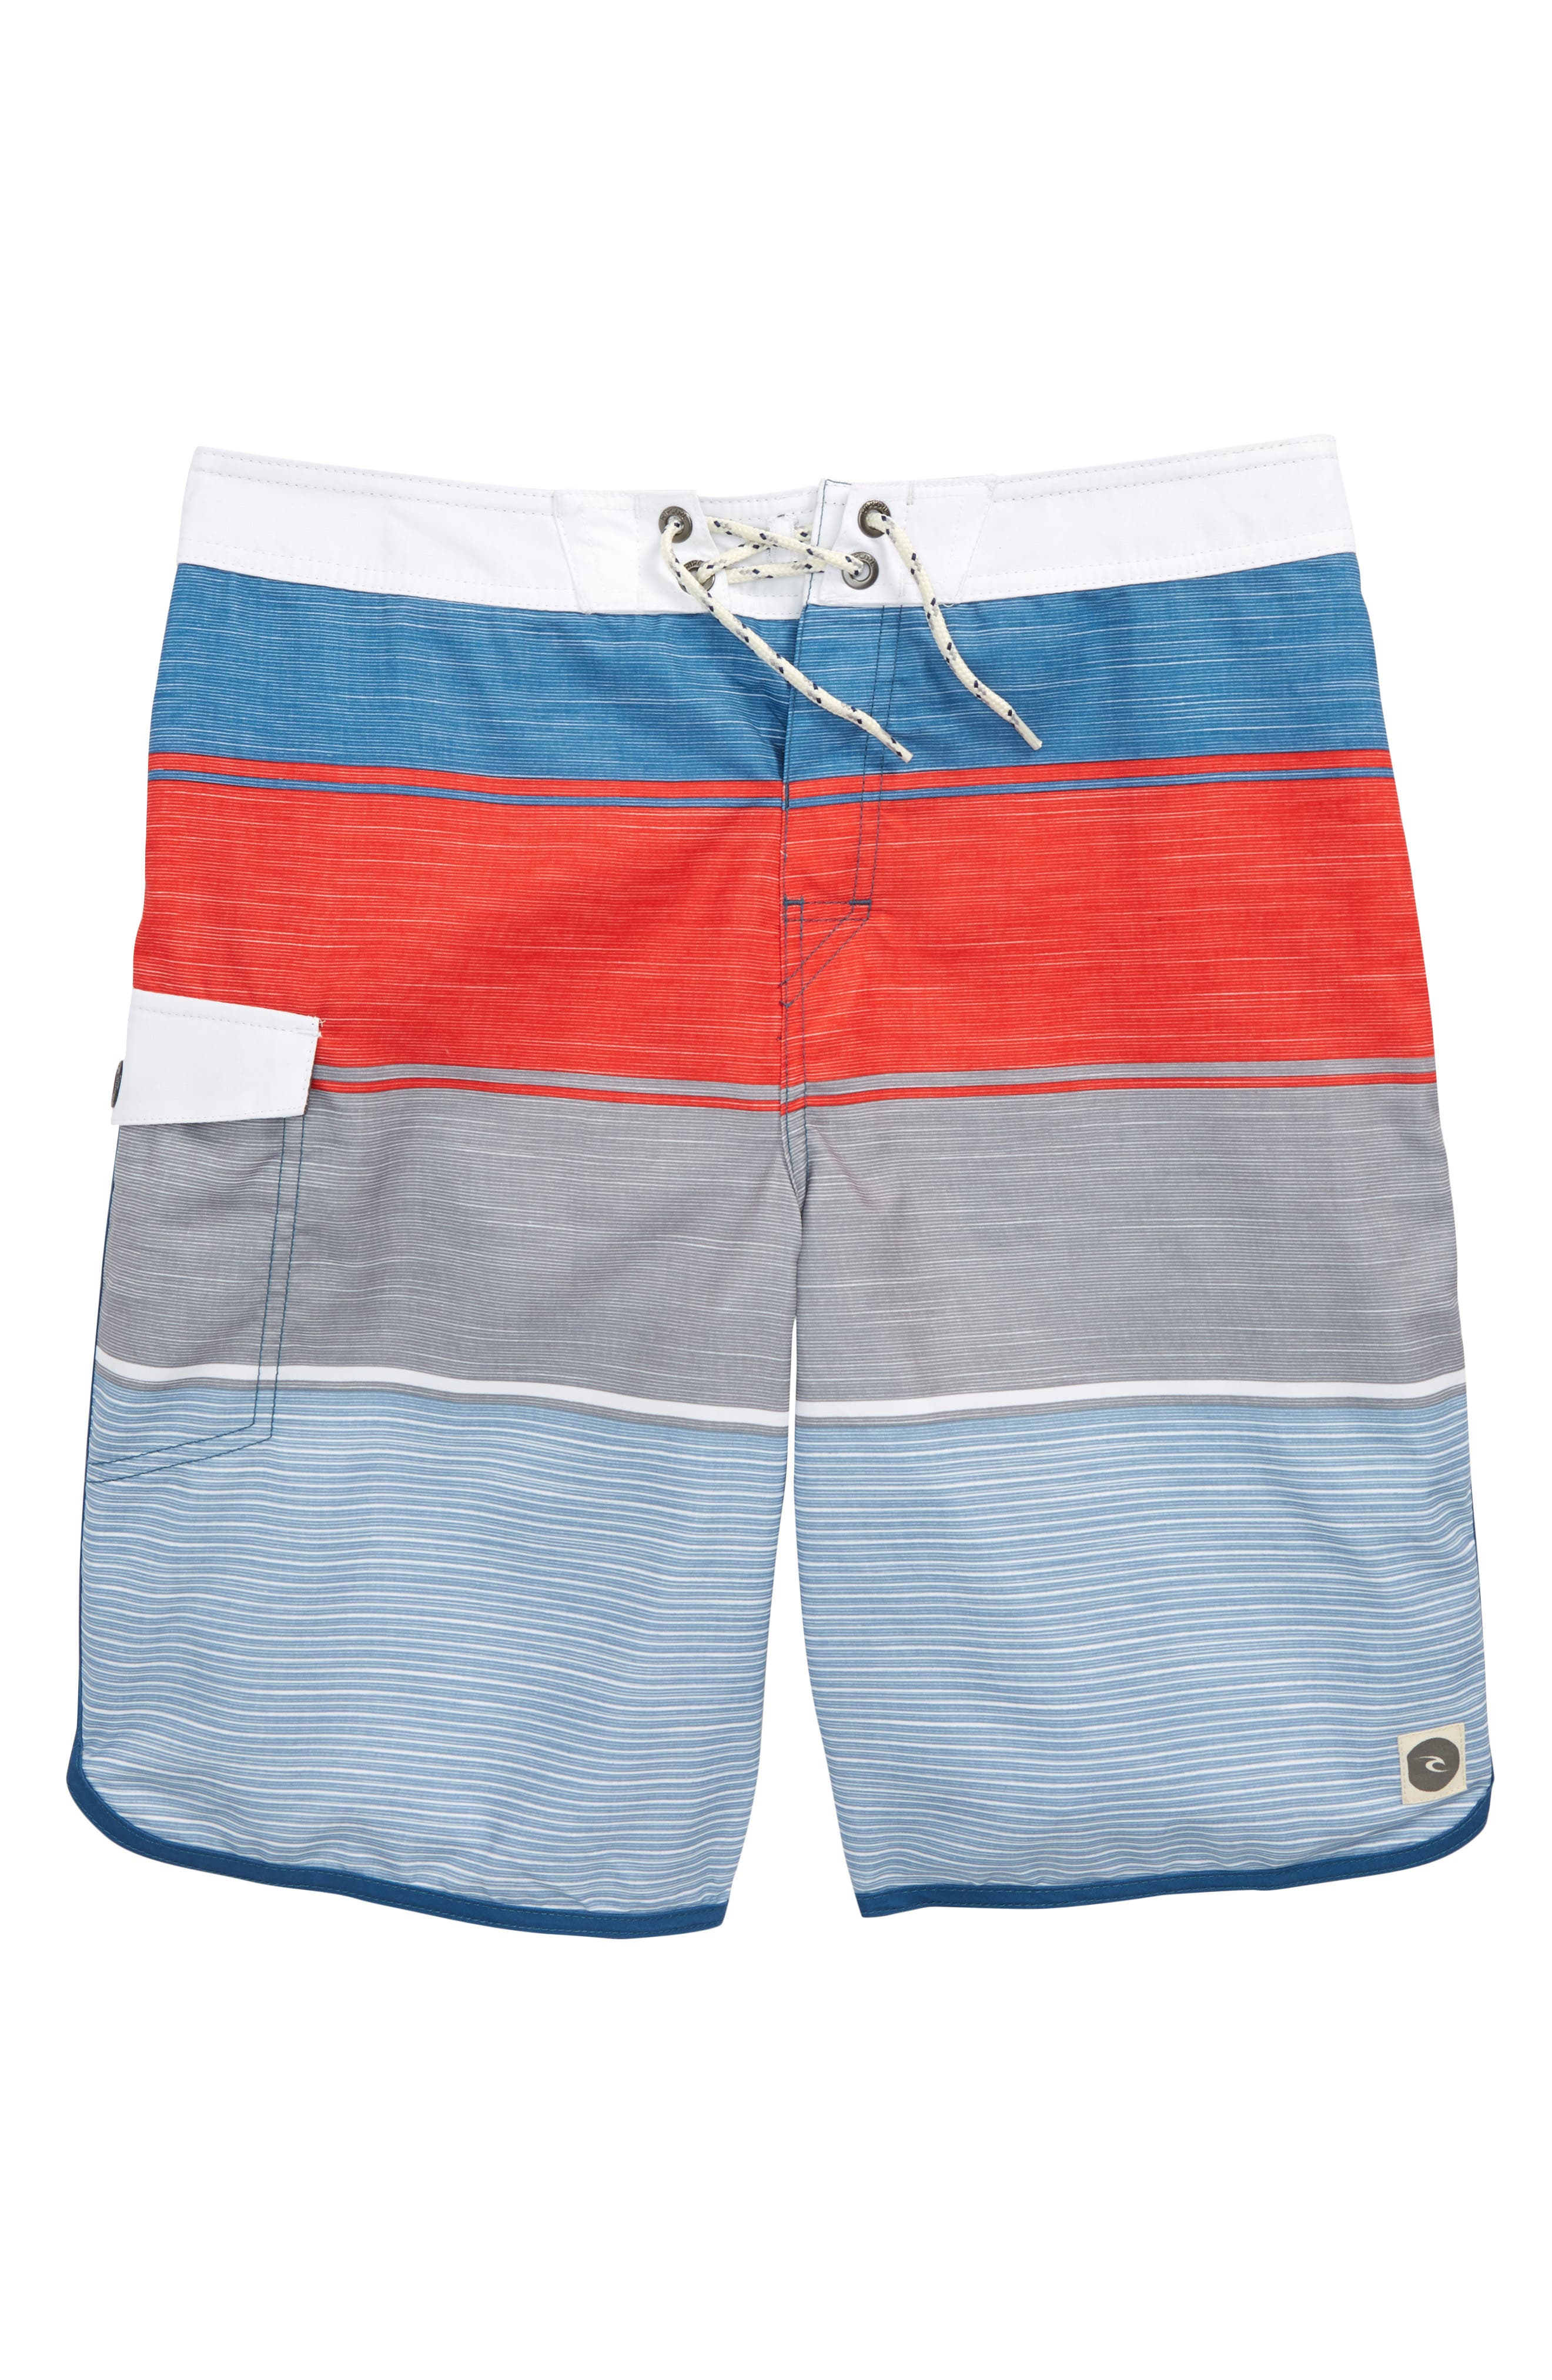 Main Image - Rip Curl Good Times Board Shorts (Big Boys)